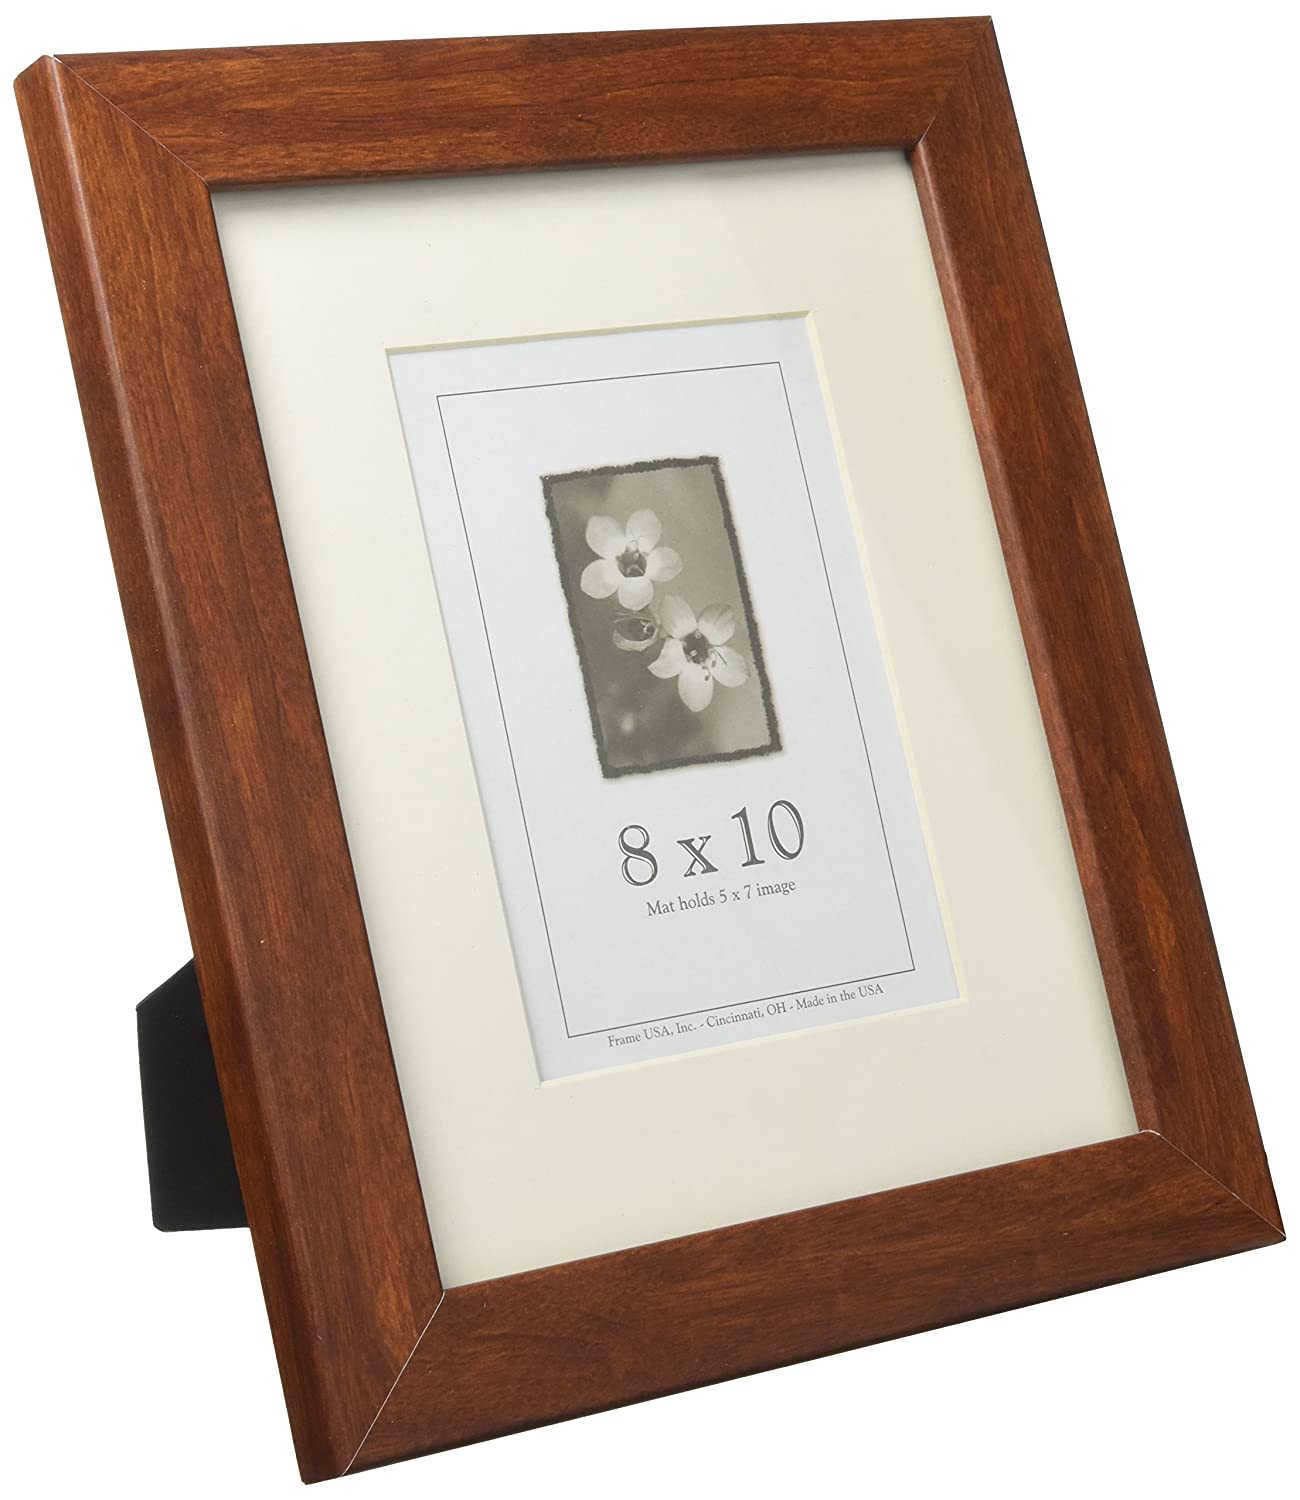 Amazon.com - 8x10 Wood Picture Frame (Black) - Made in the USA ...